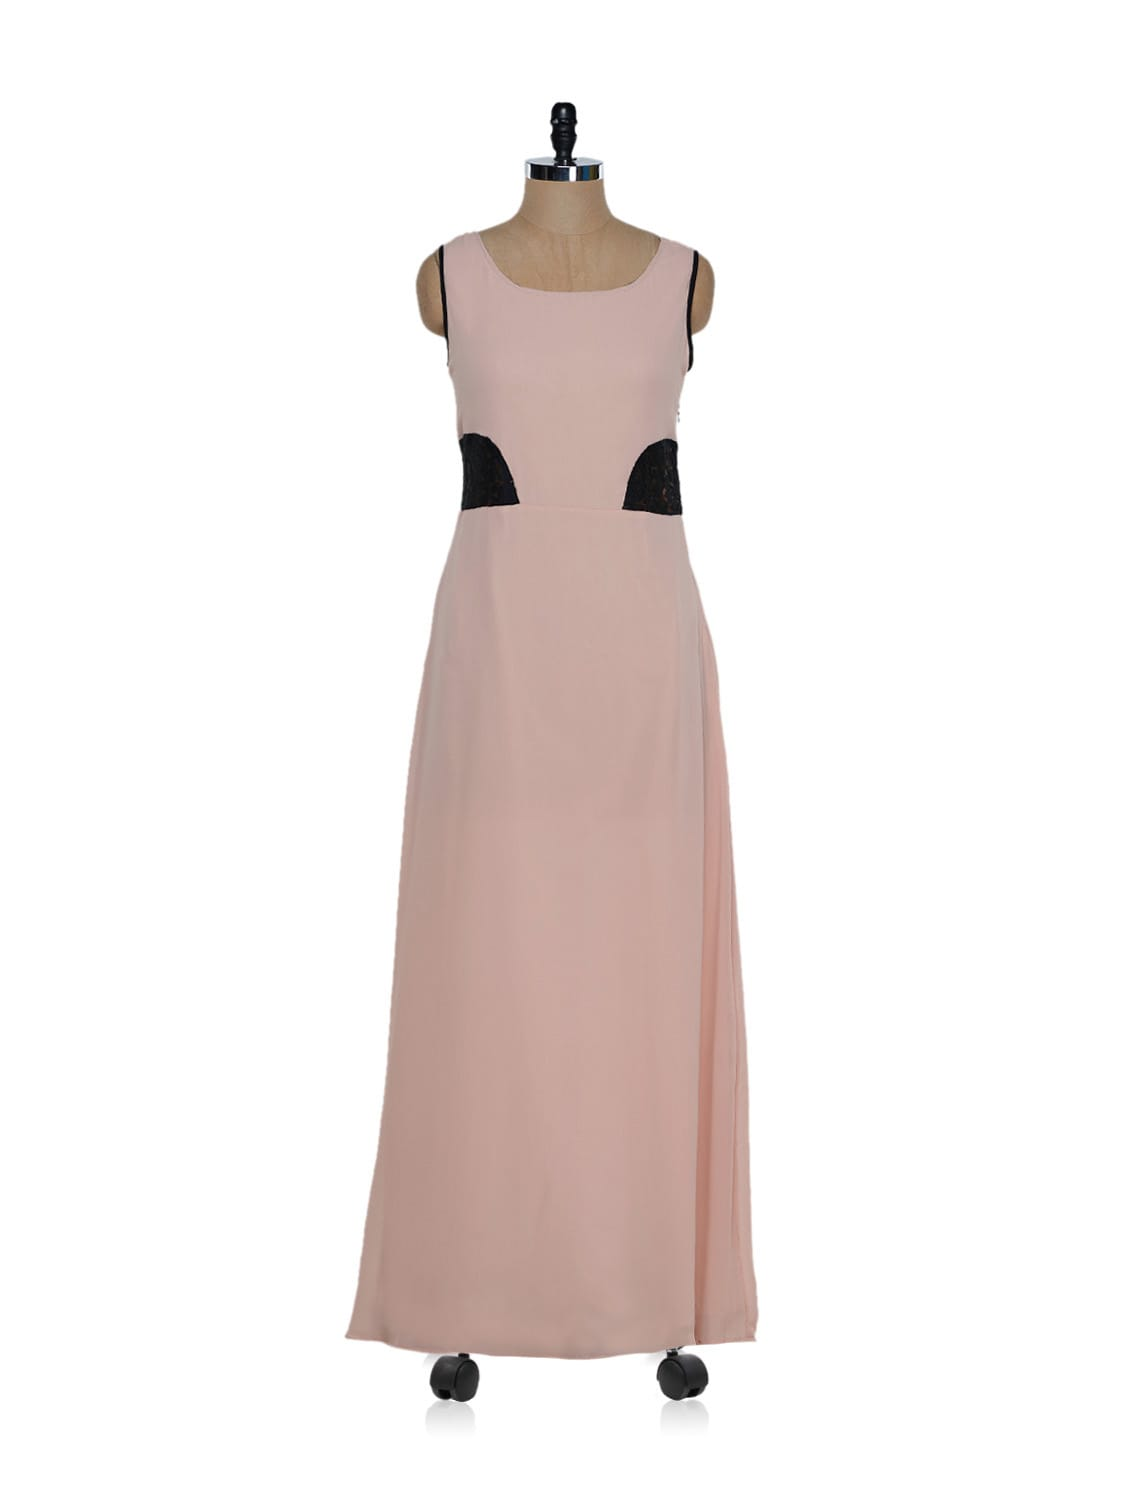 Peach And Black Maxi Dress - Eavan